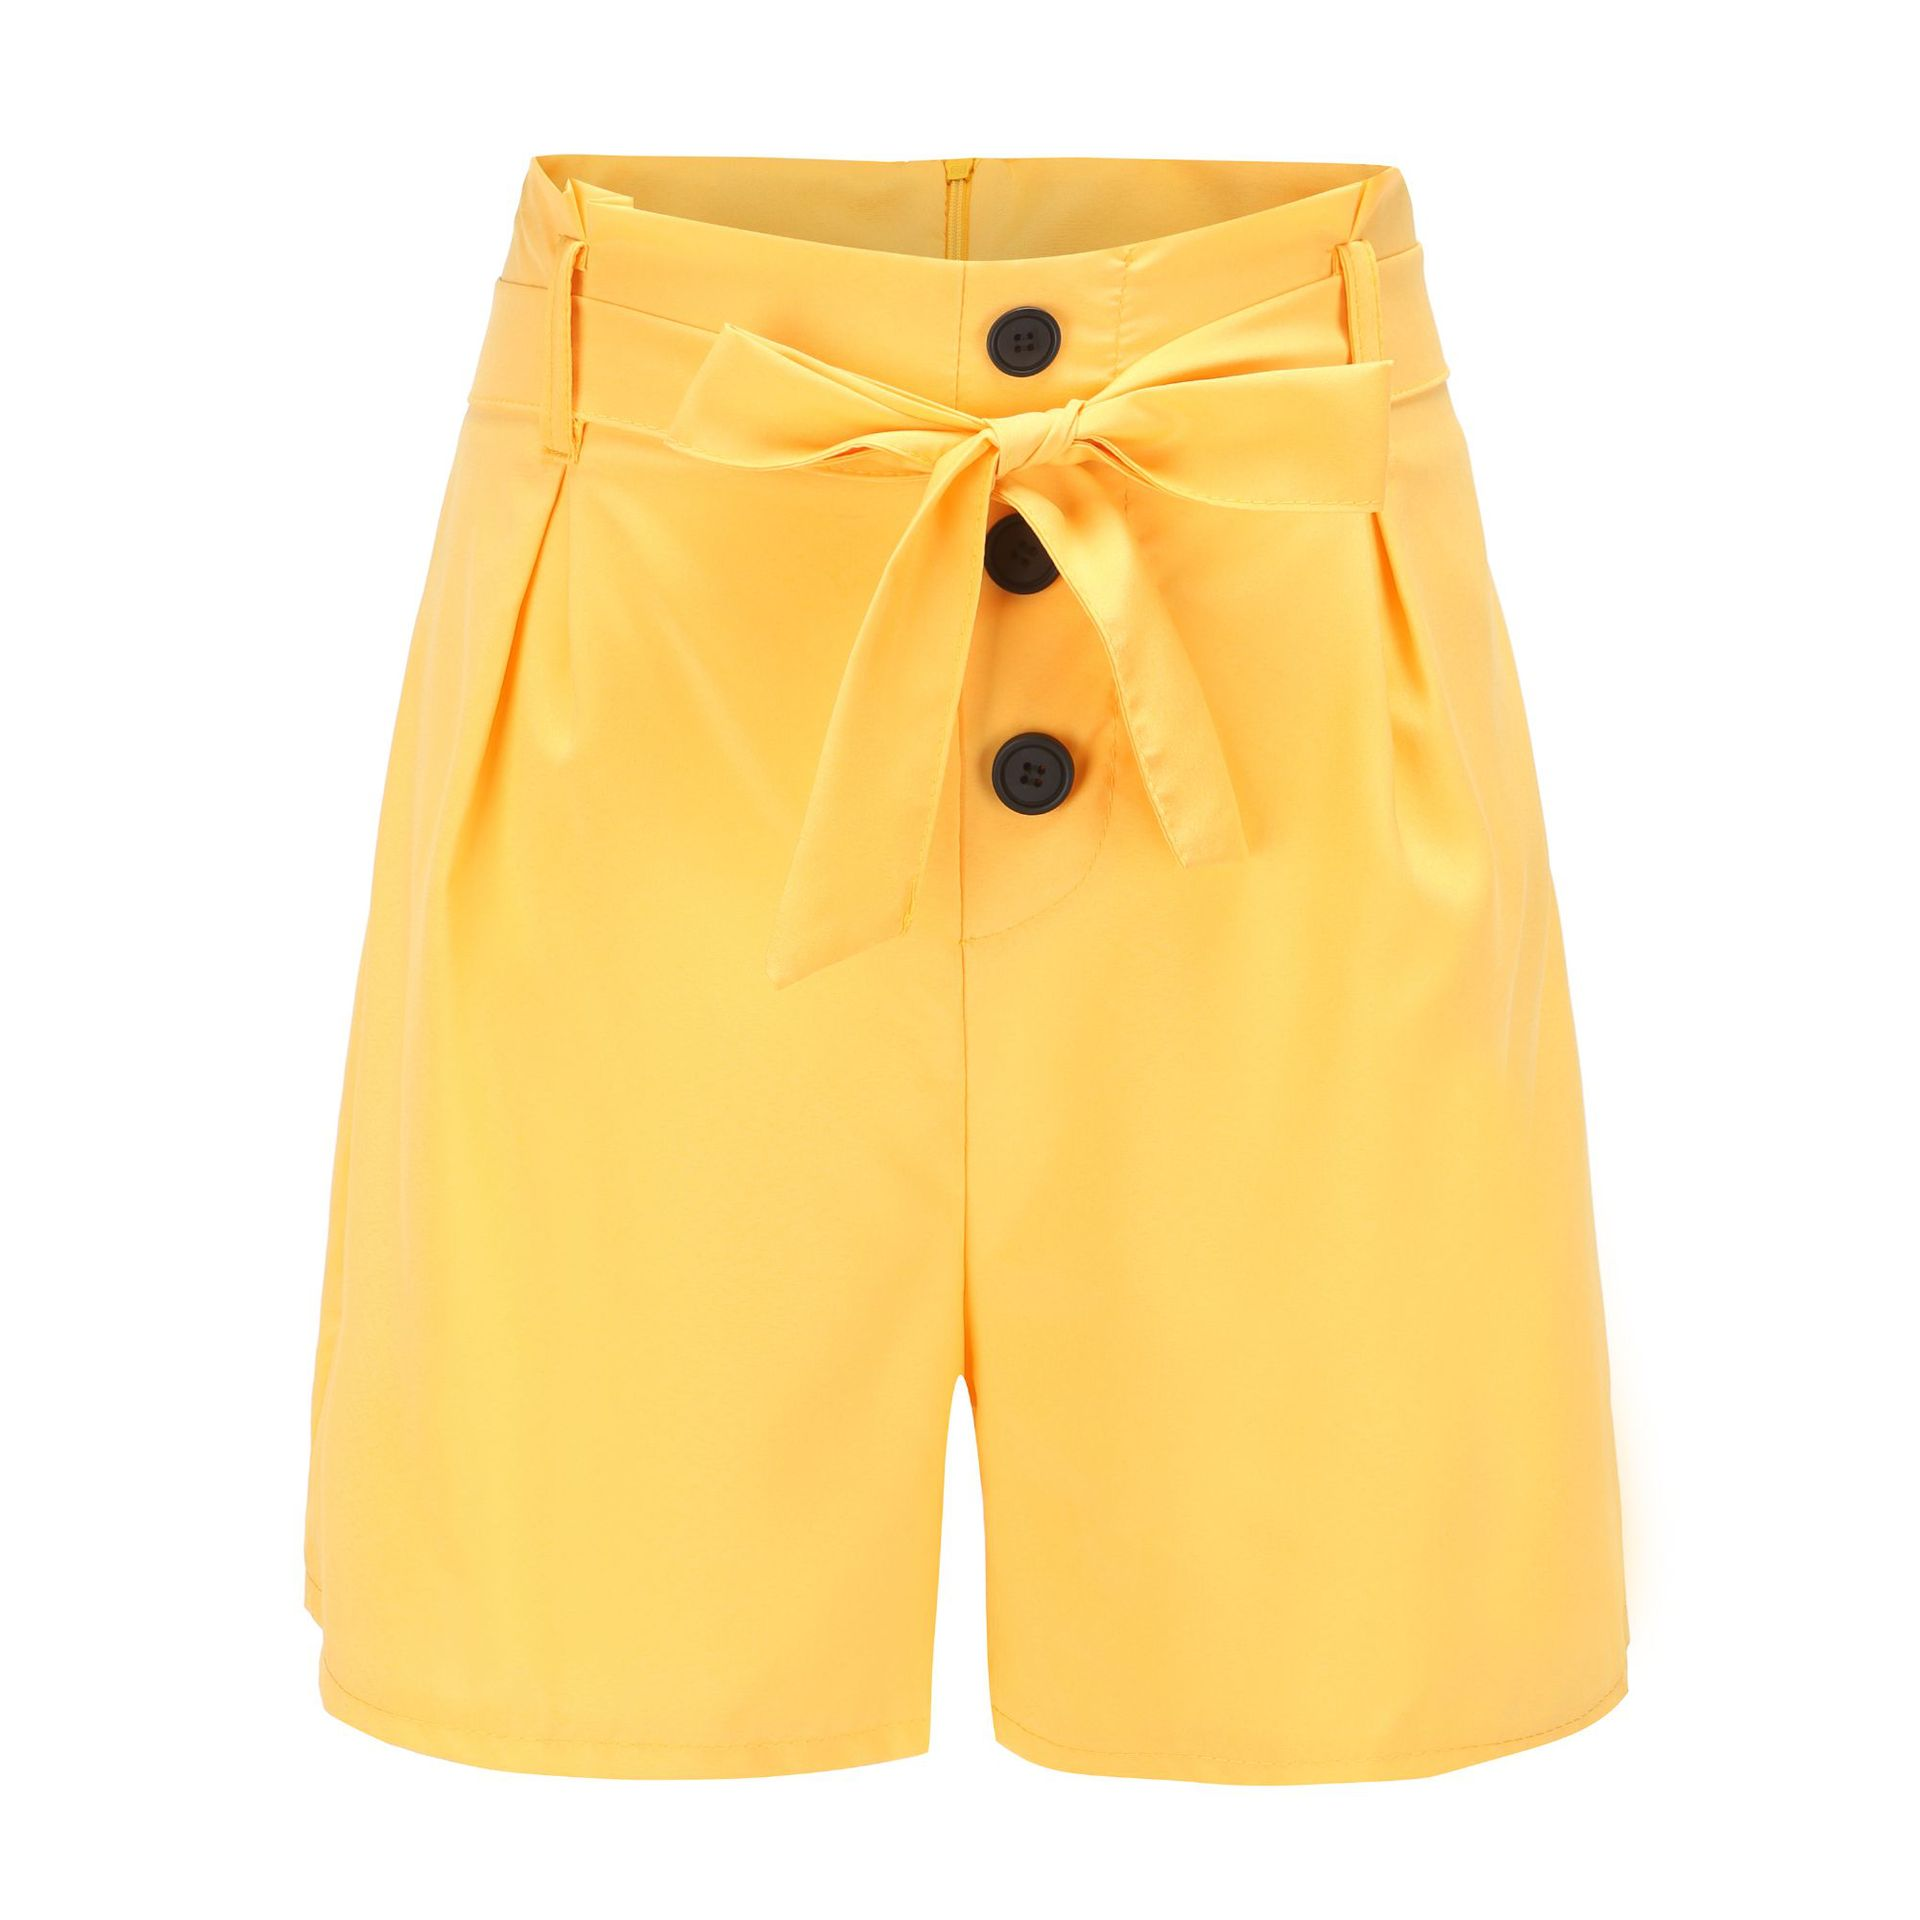 ONCE Women Shorts High Waist Buttons Sashes Elegant  Summer Zip-Up Skinny Shorts Solid Plus Size Pockets Summer Casual Shorts 9